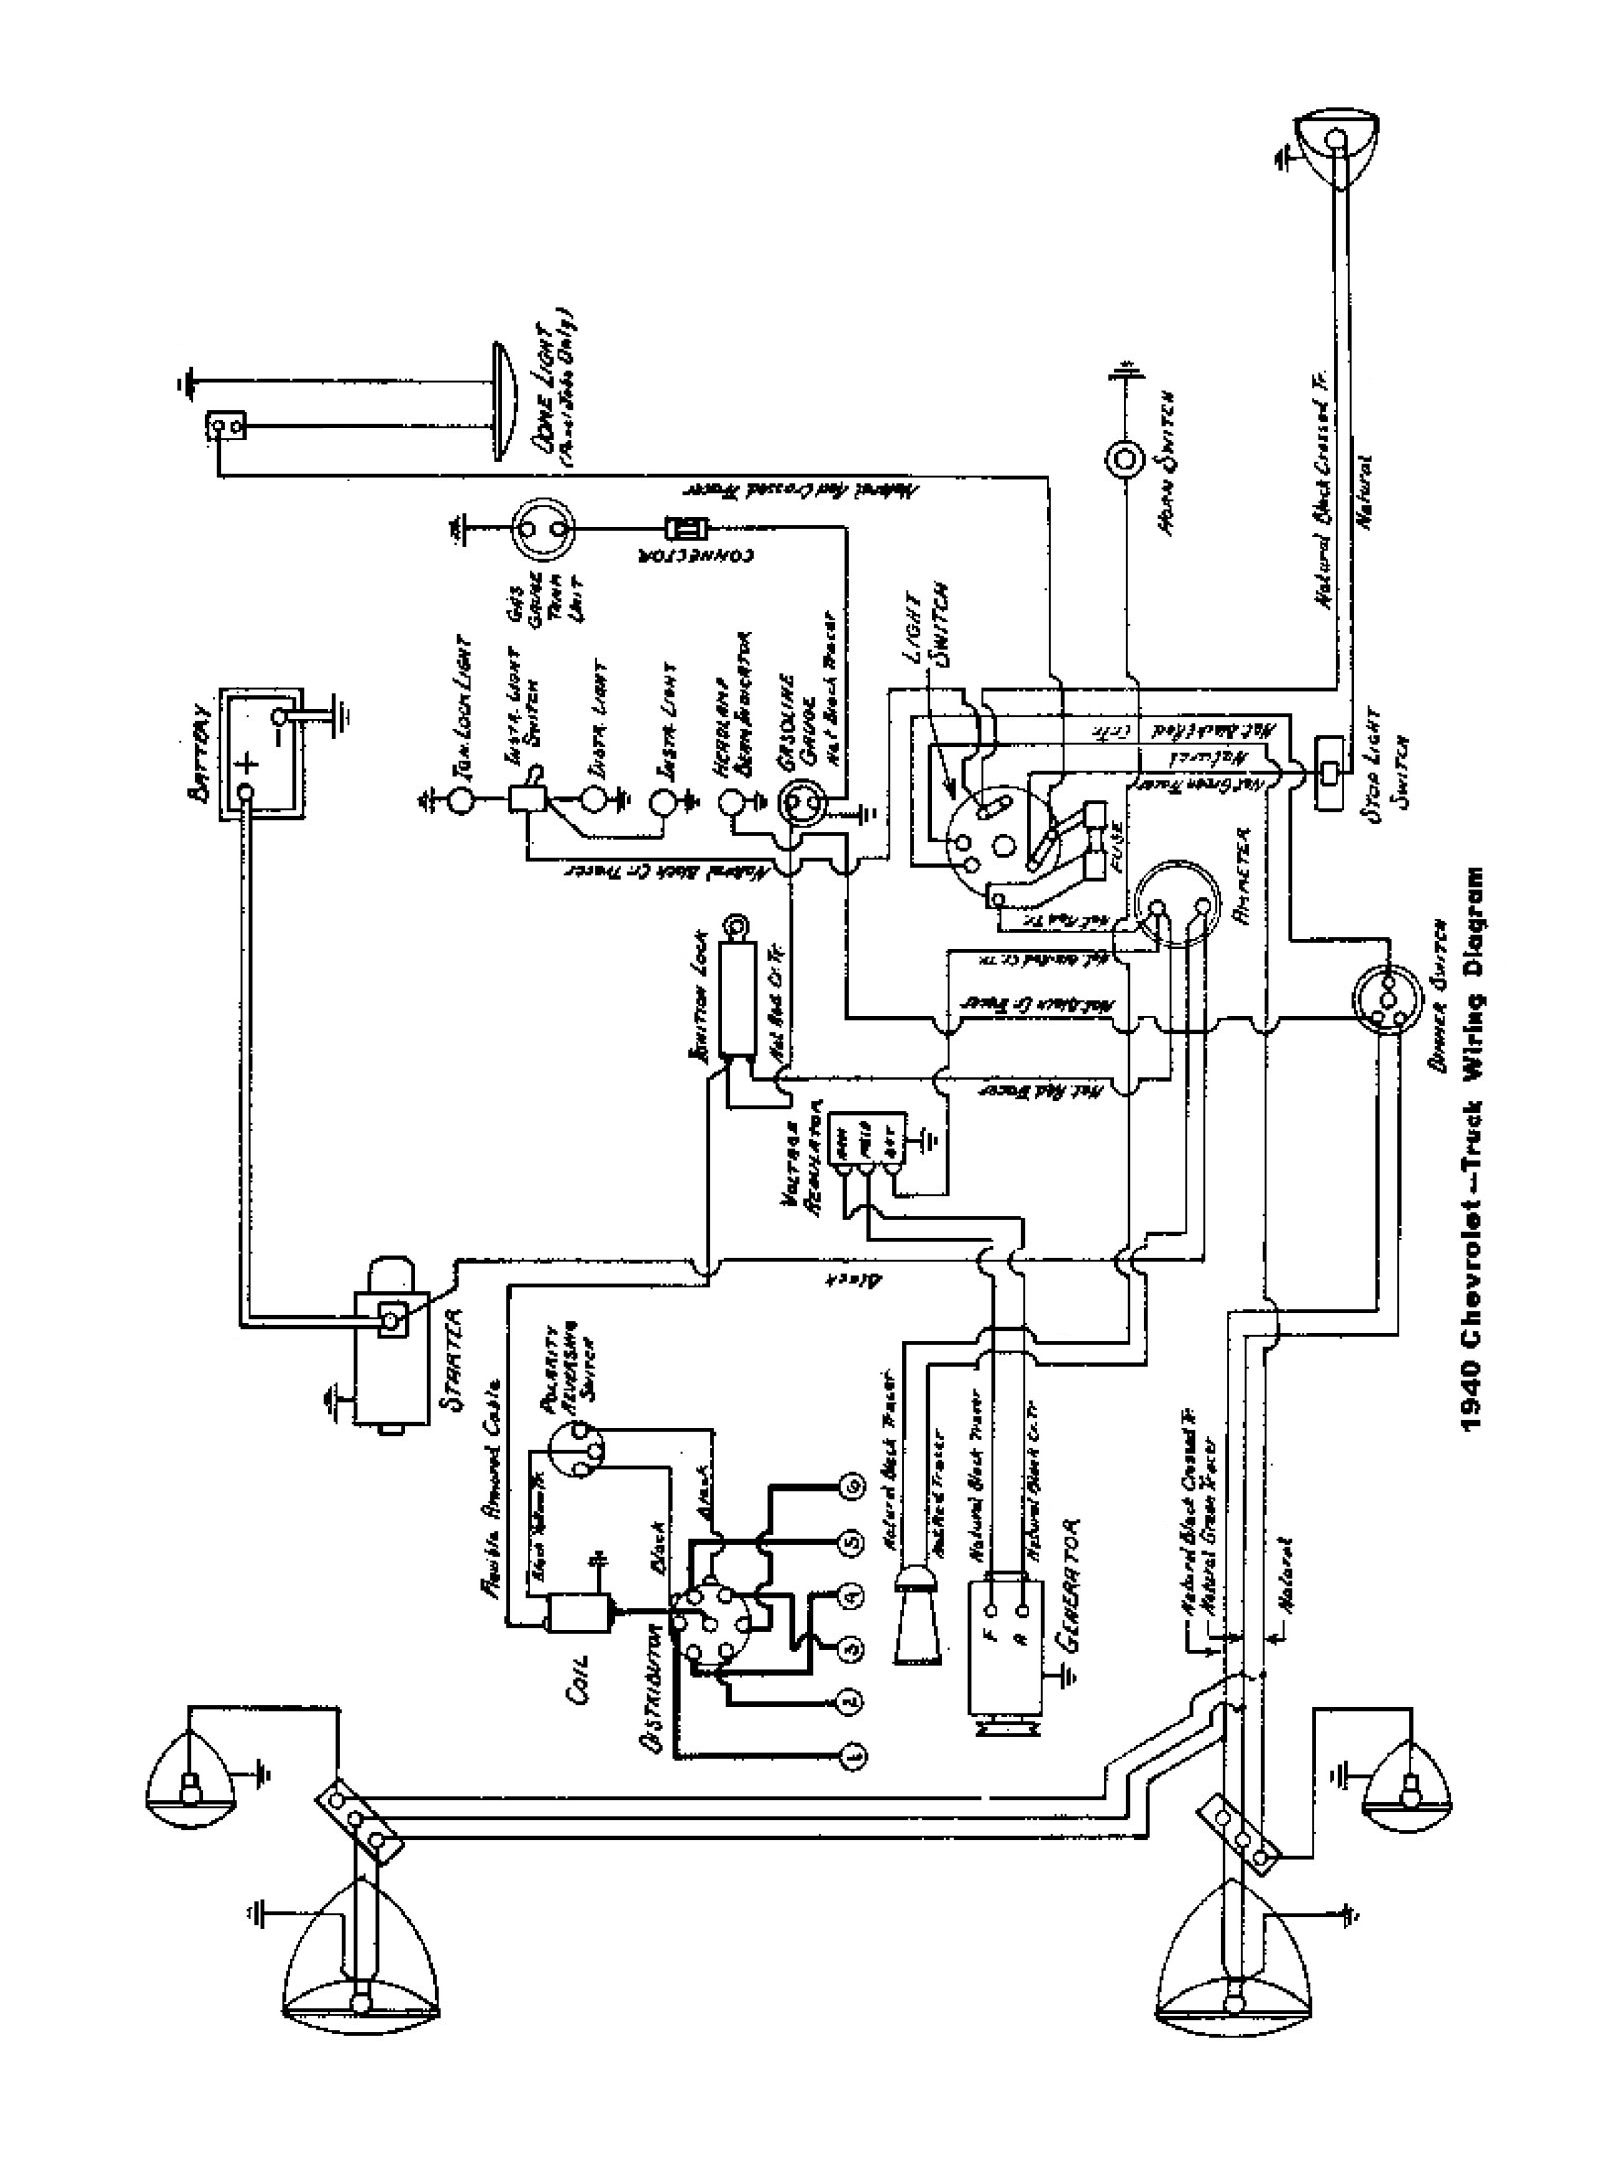 International Truck Battery Diagrams - Wiring Diagram Online on